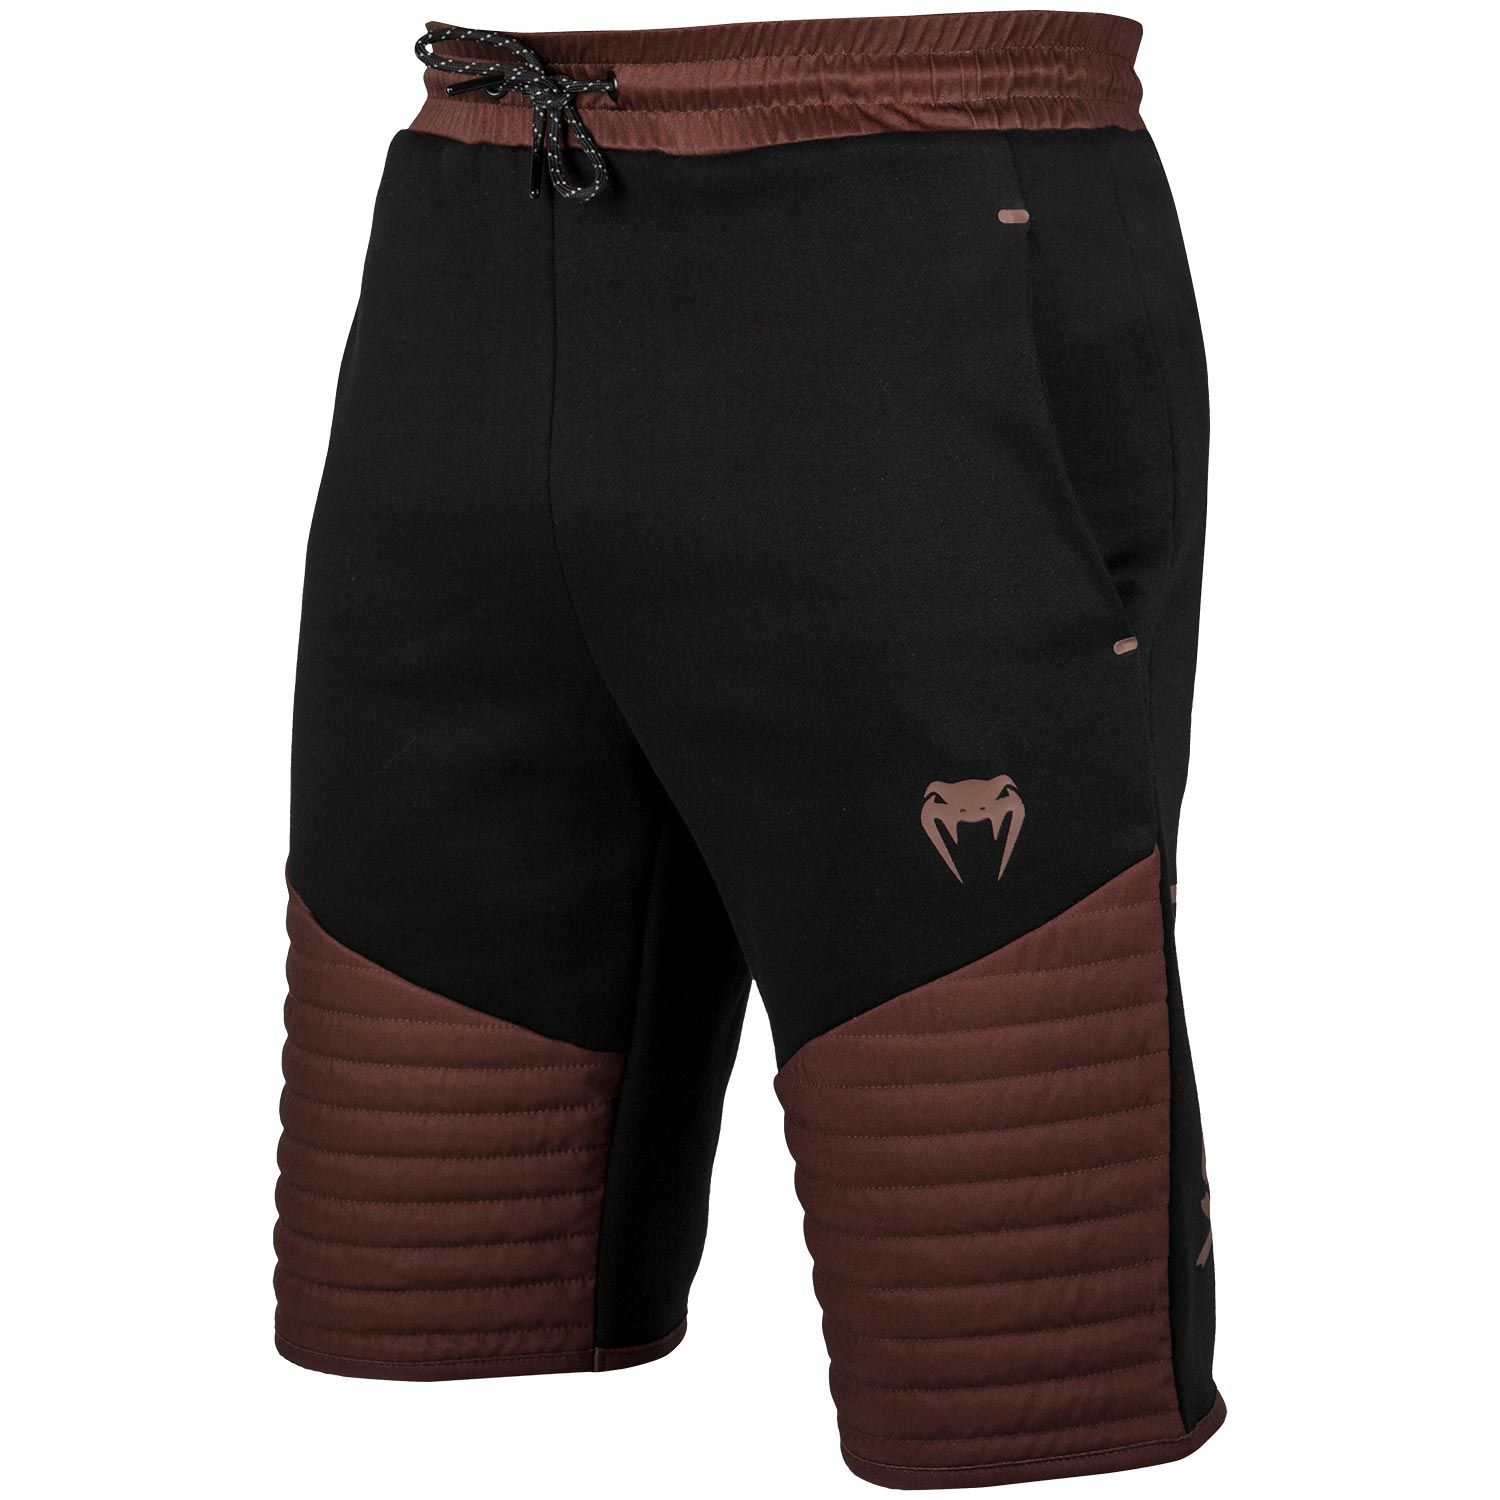 Short Venum Laser - Noir/Marron